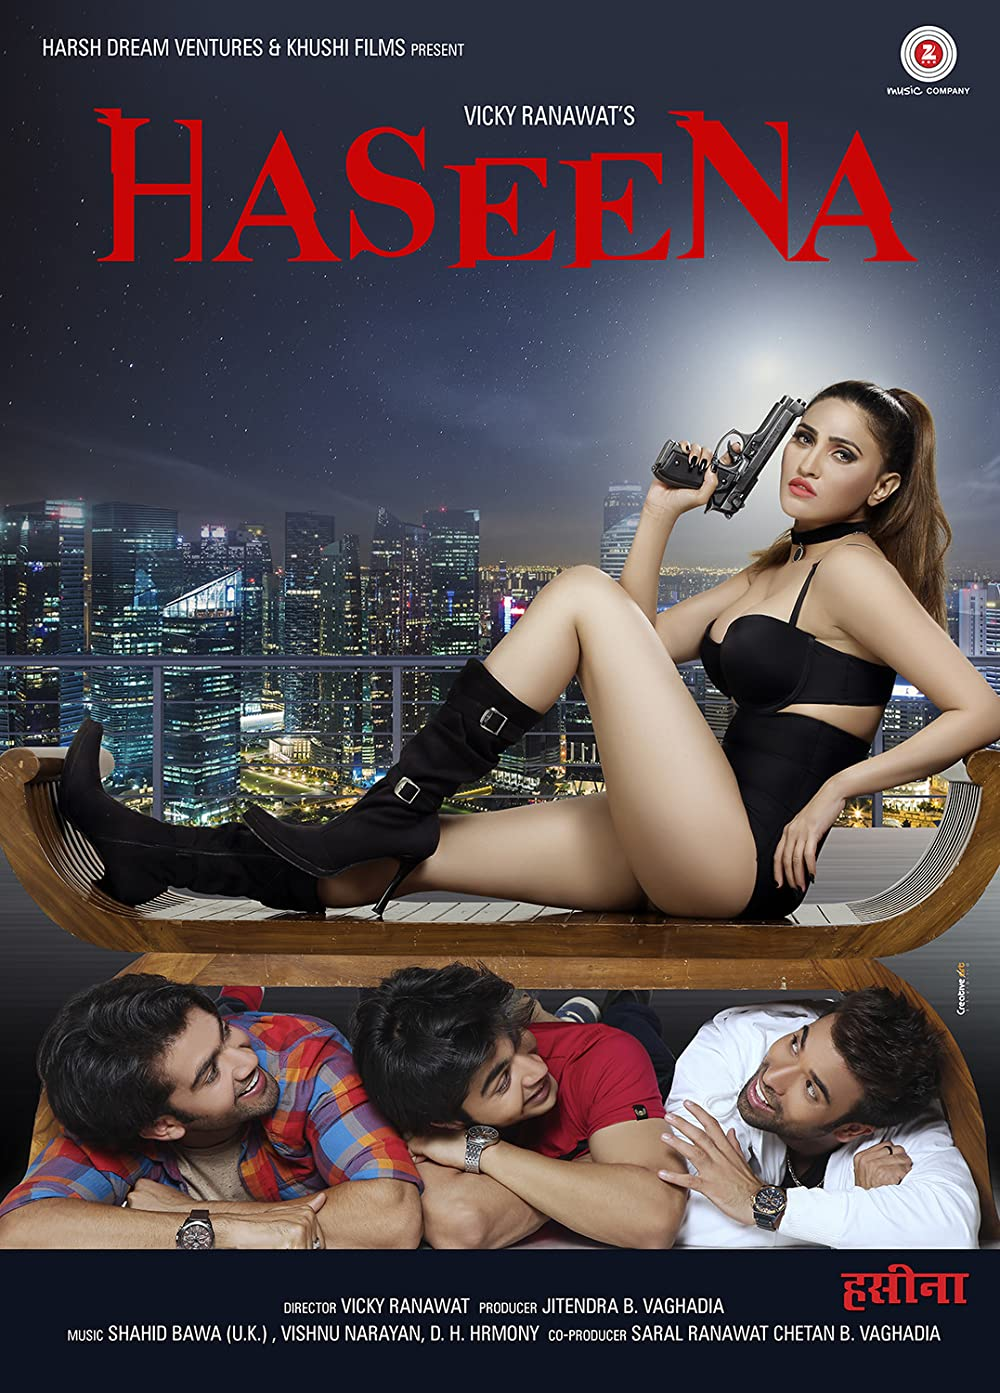 18+ Haseena 2018 Hindi 720p HDRip 800MB x264 AAC